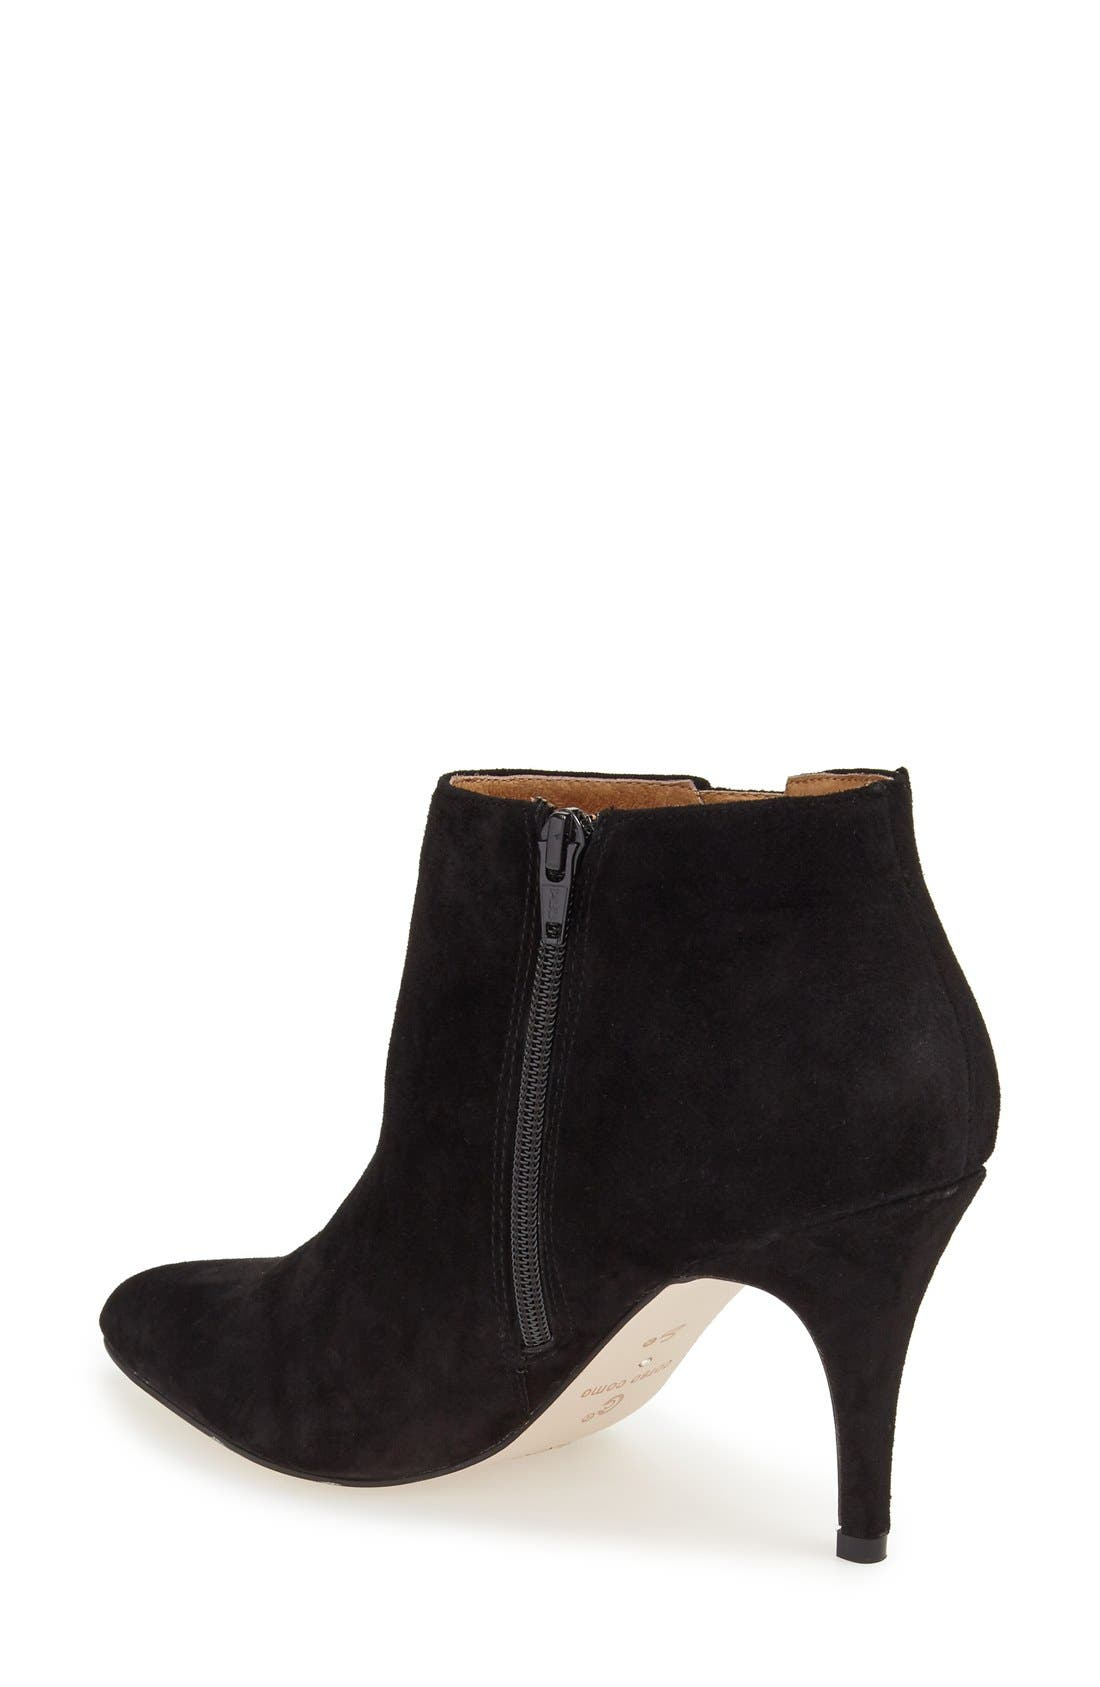 'Roster' Pointy Toe Bootie,                             Alternate thumbnail 2, color,                             Black Suede